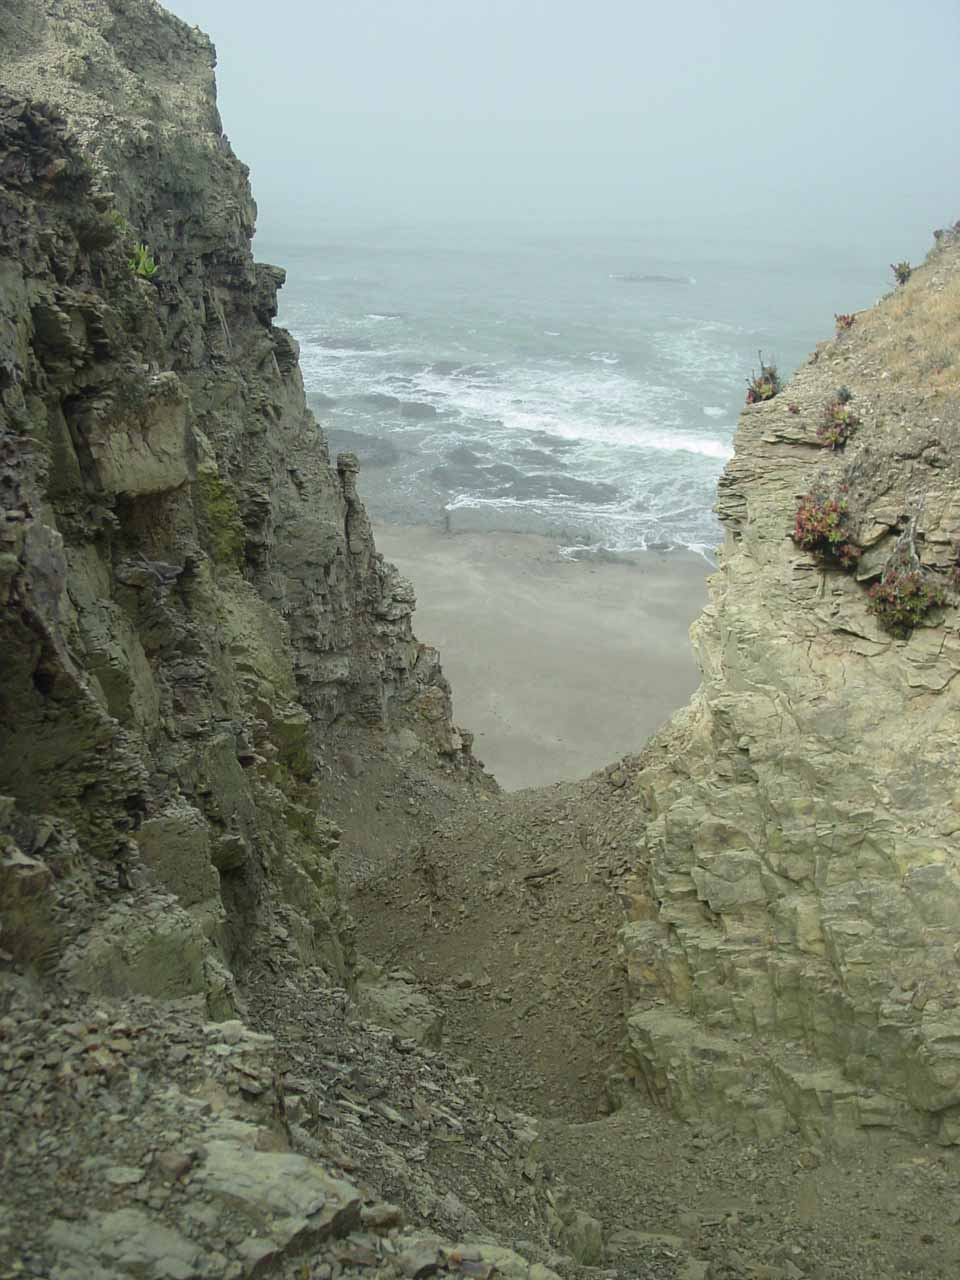 Looking down at the steep scramble to get down to the beach